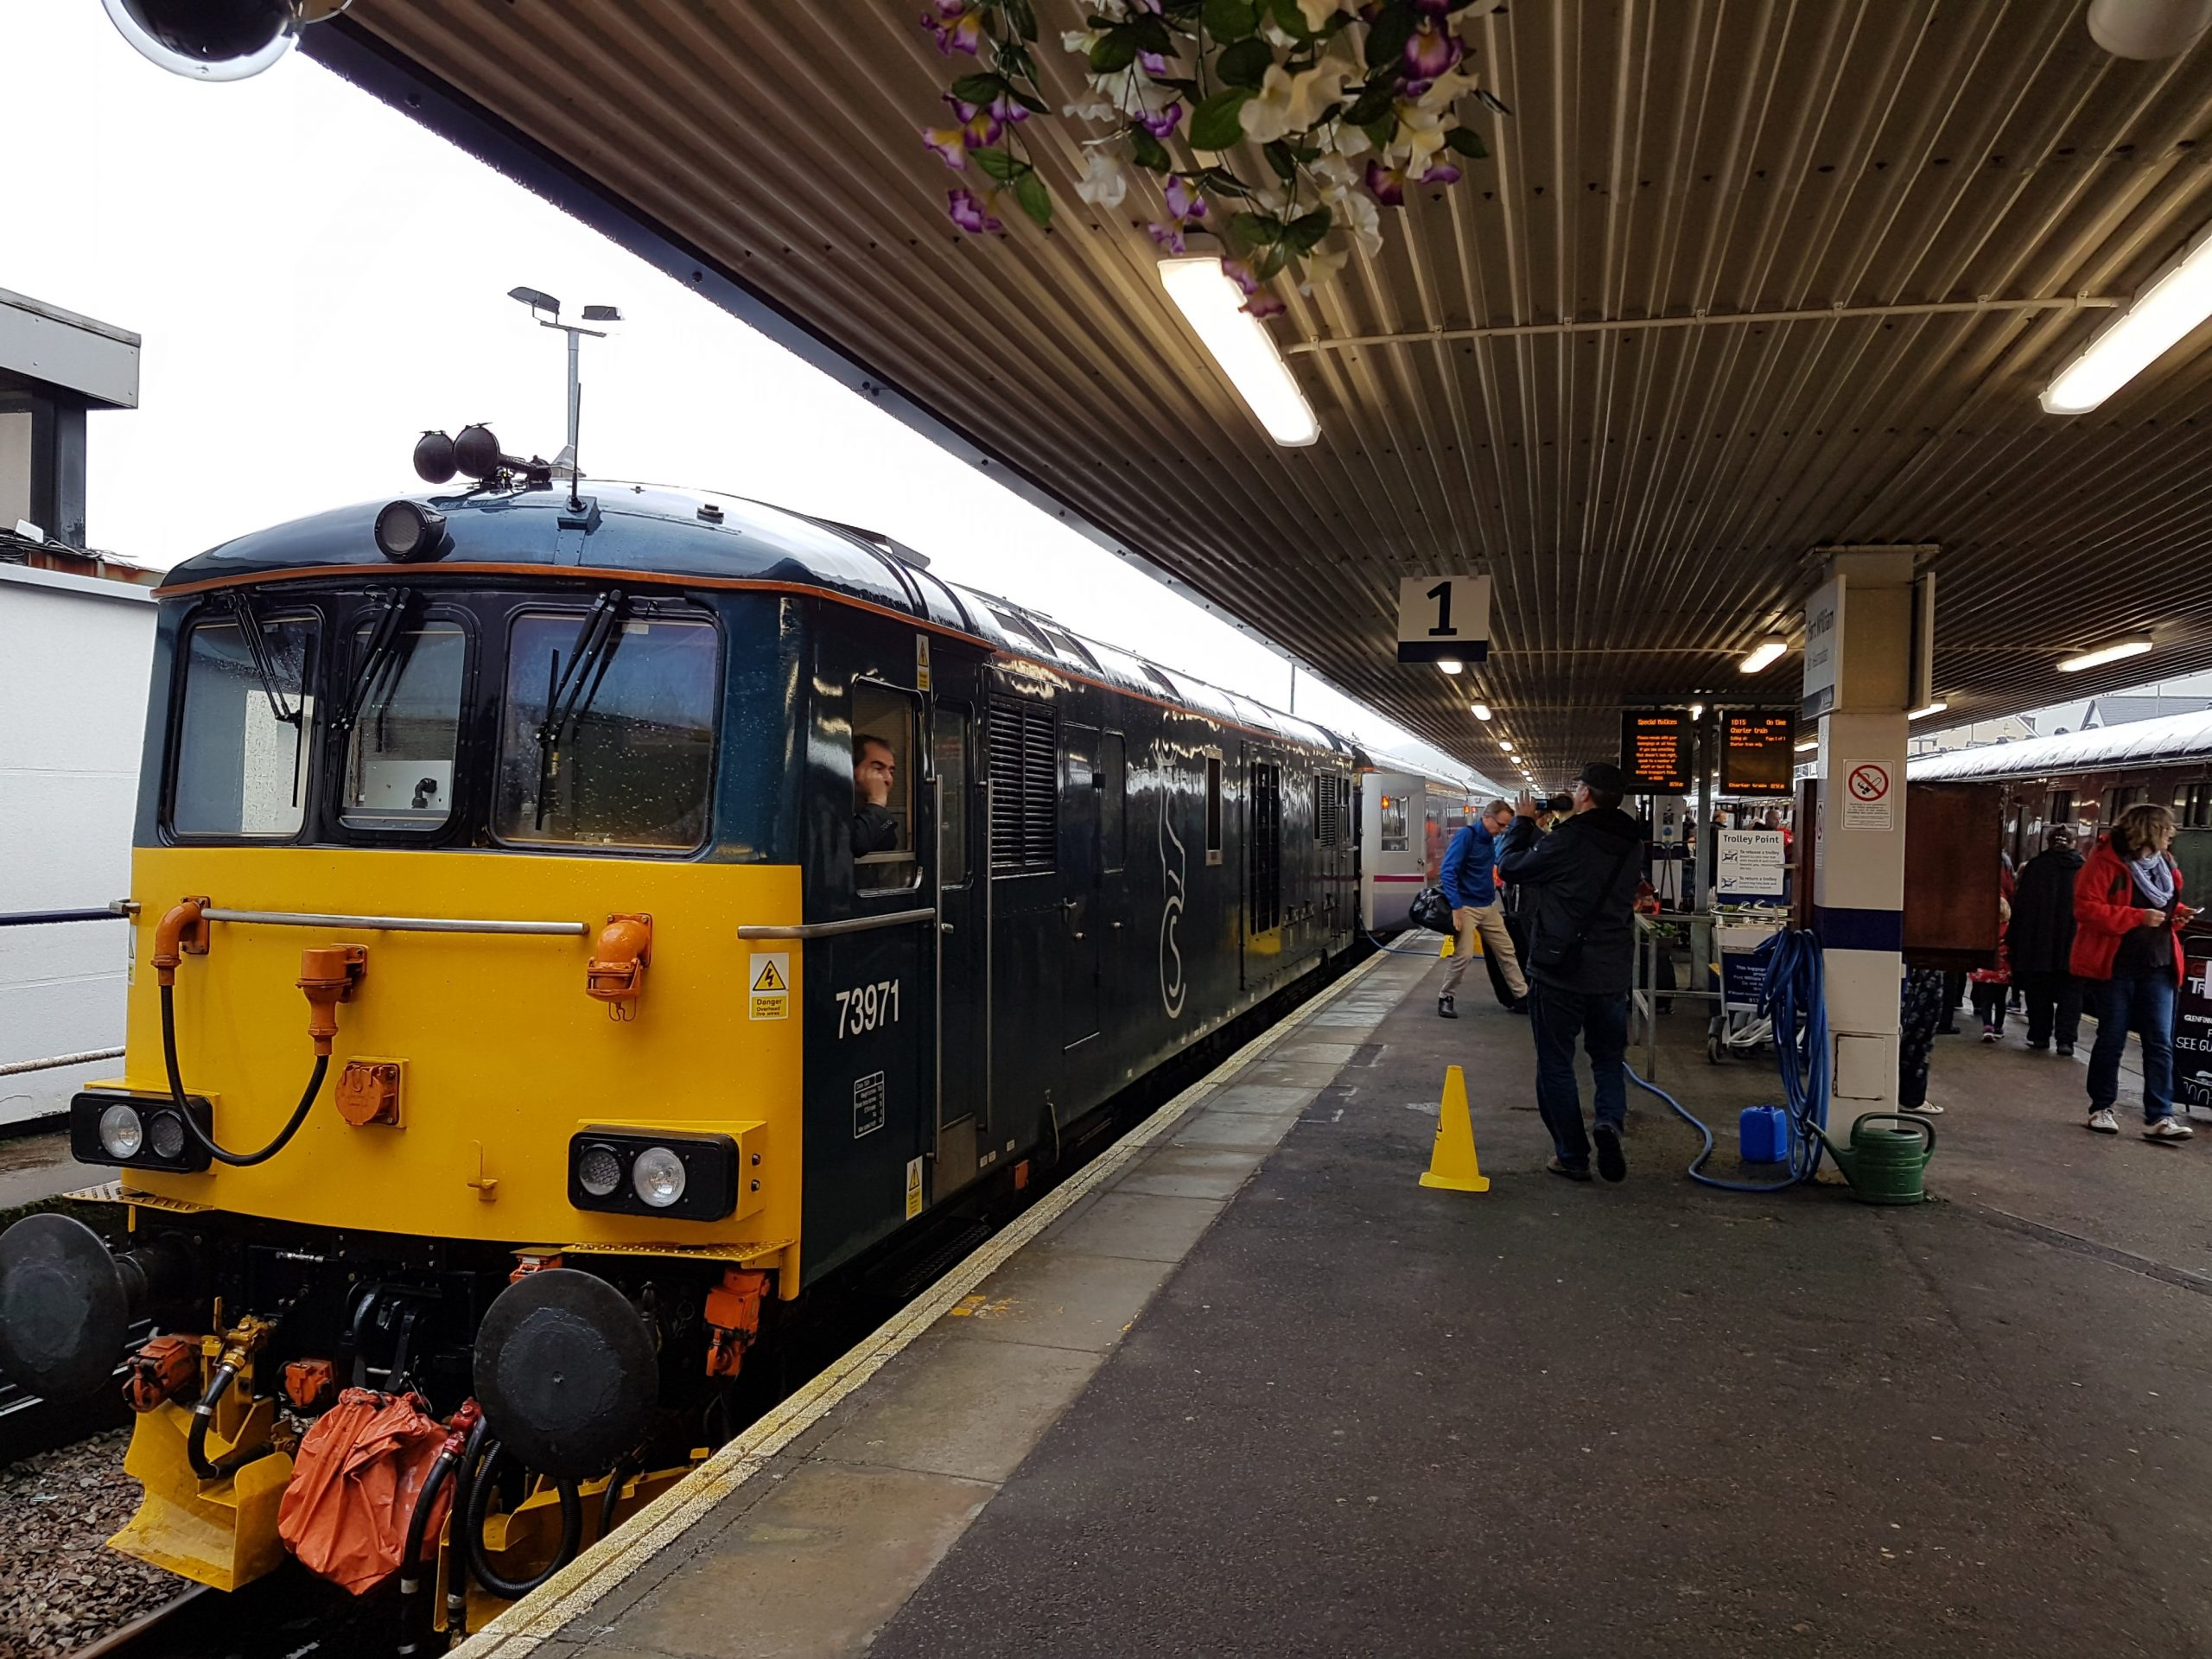 Sleeper train at Fort William